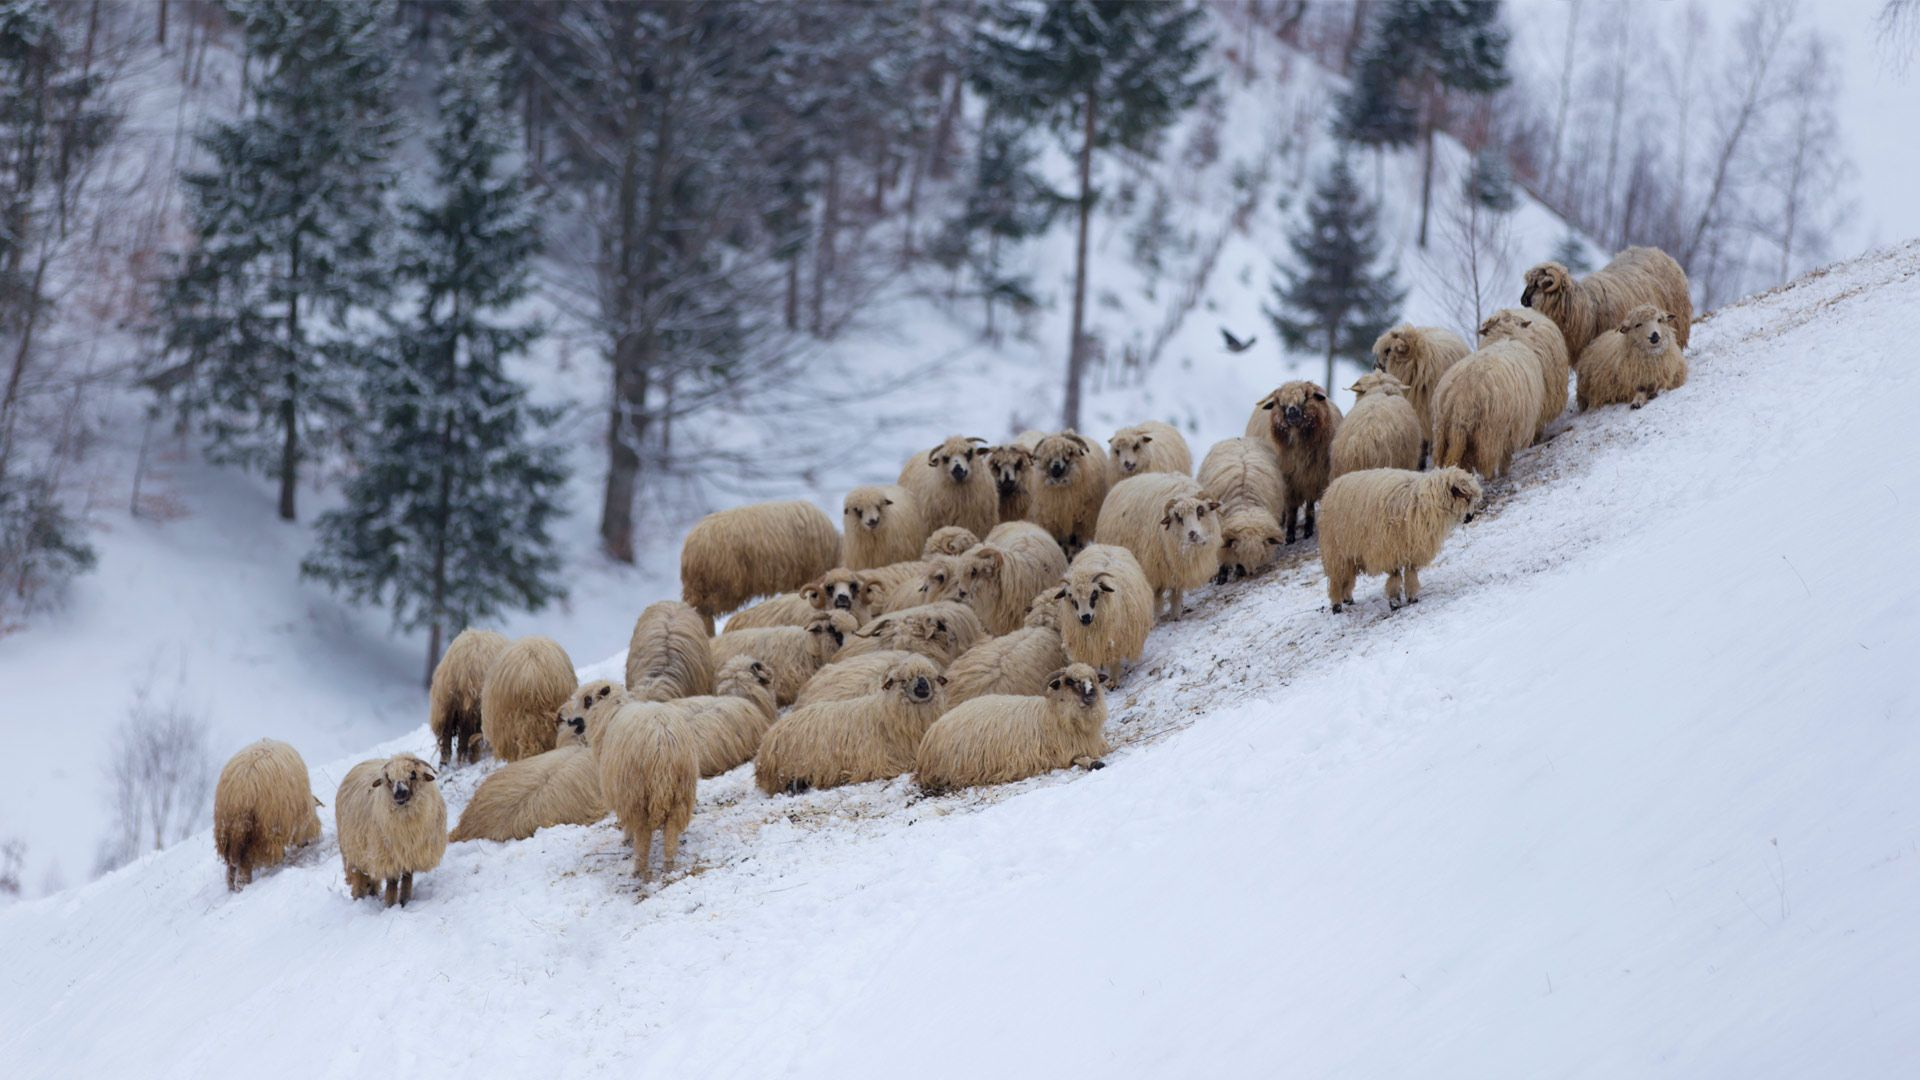 Flock of sheep in the mountains, during winter